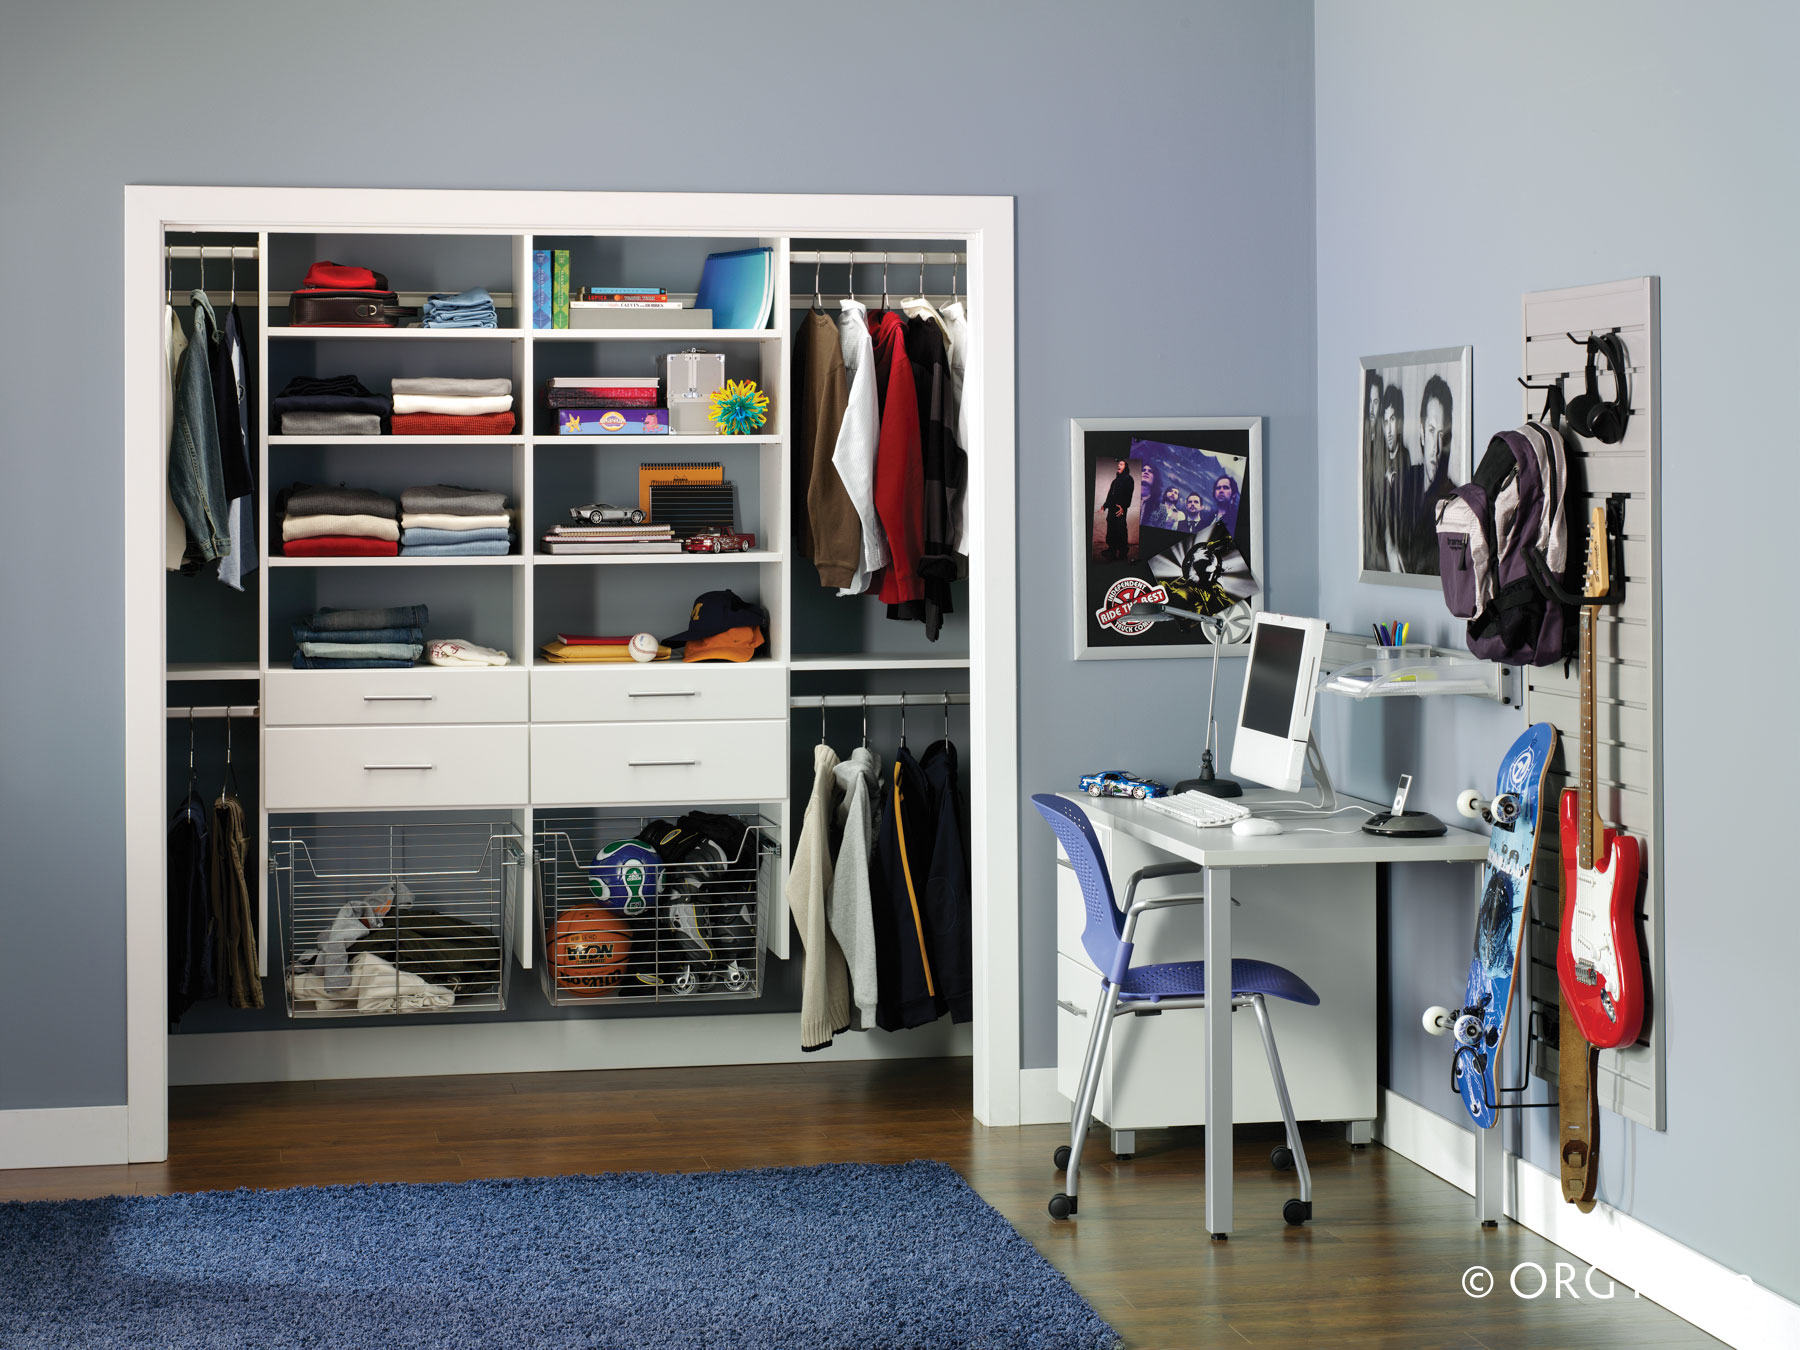 wadrobe design custom costs closet by home modern builder www closets denver ideas colorful